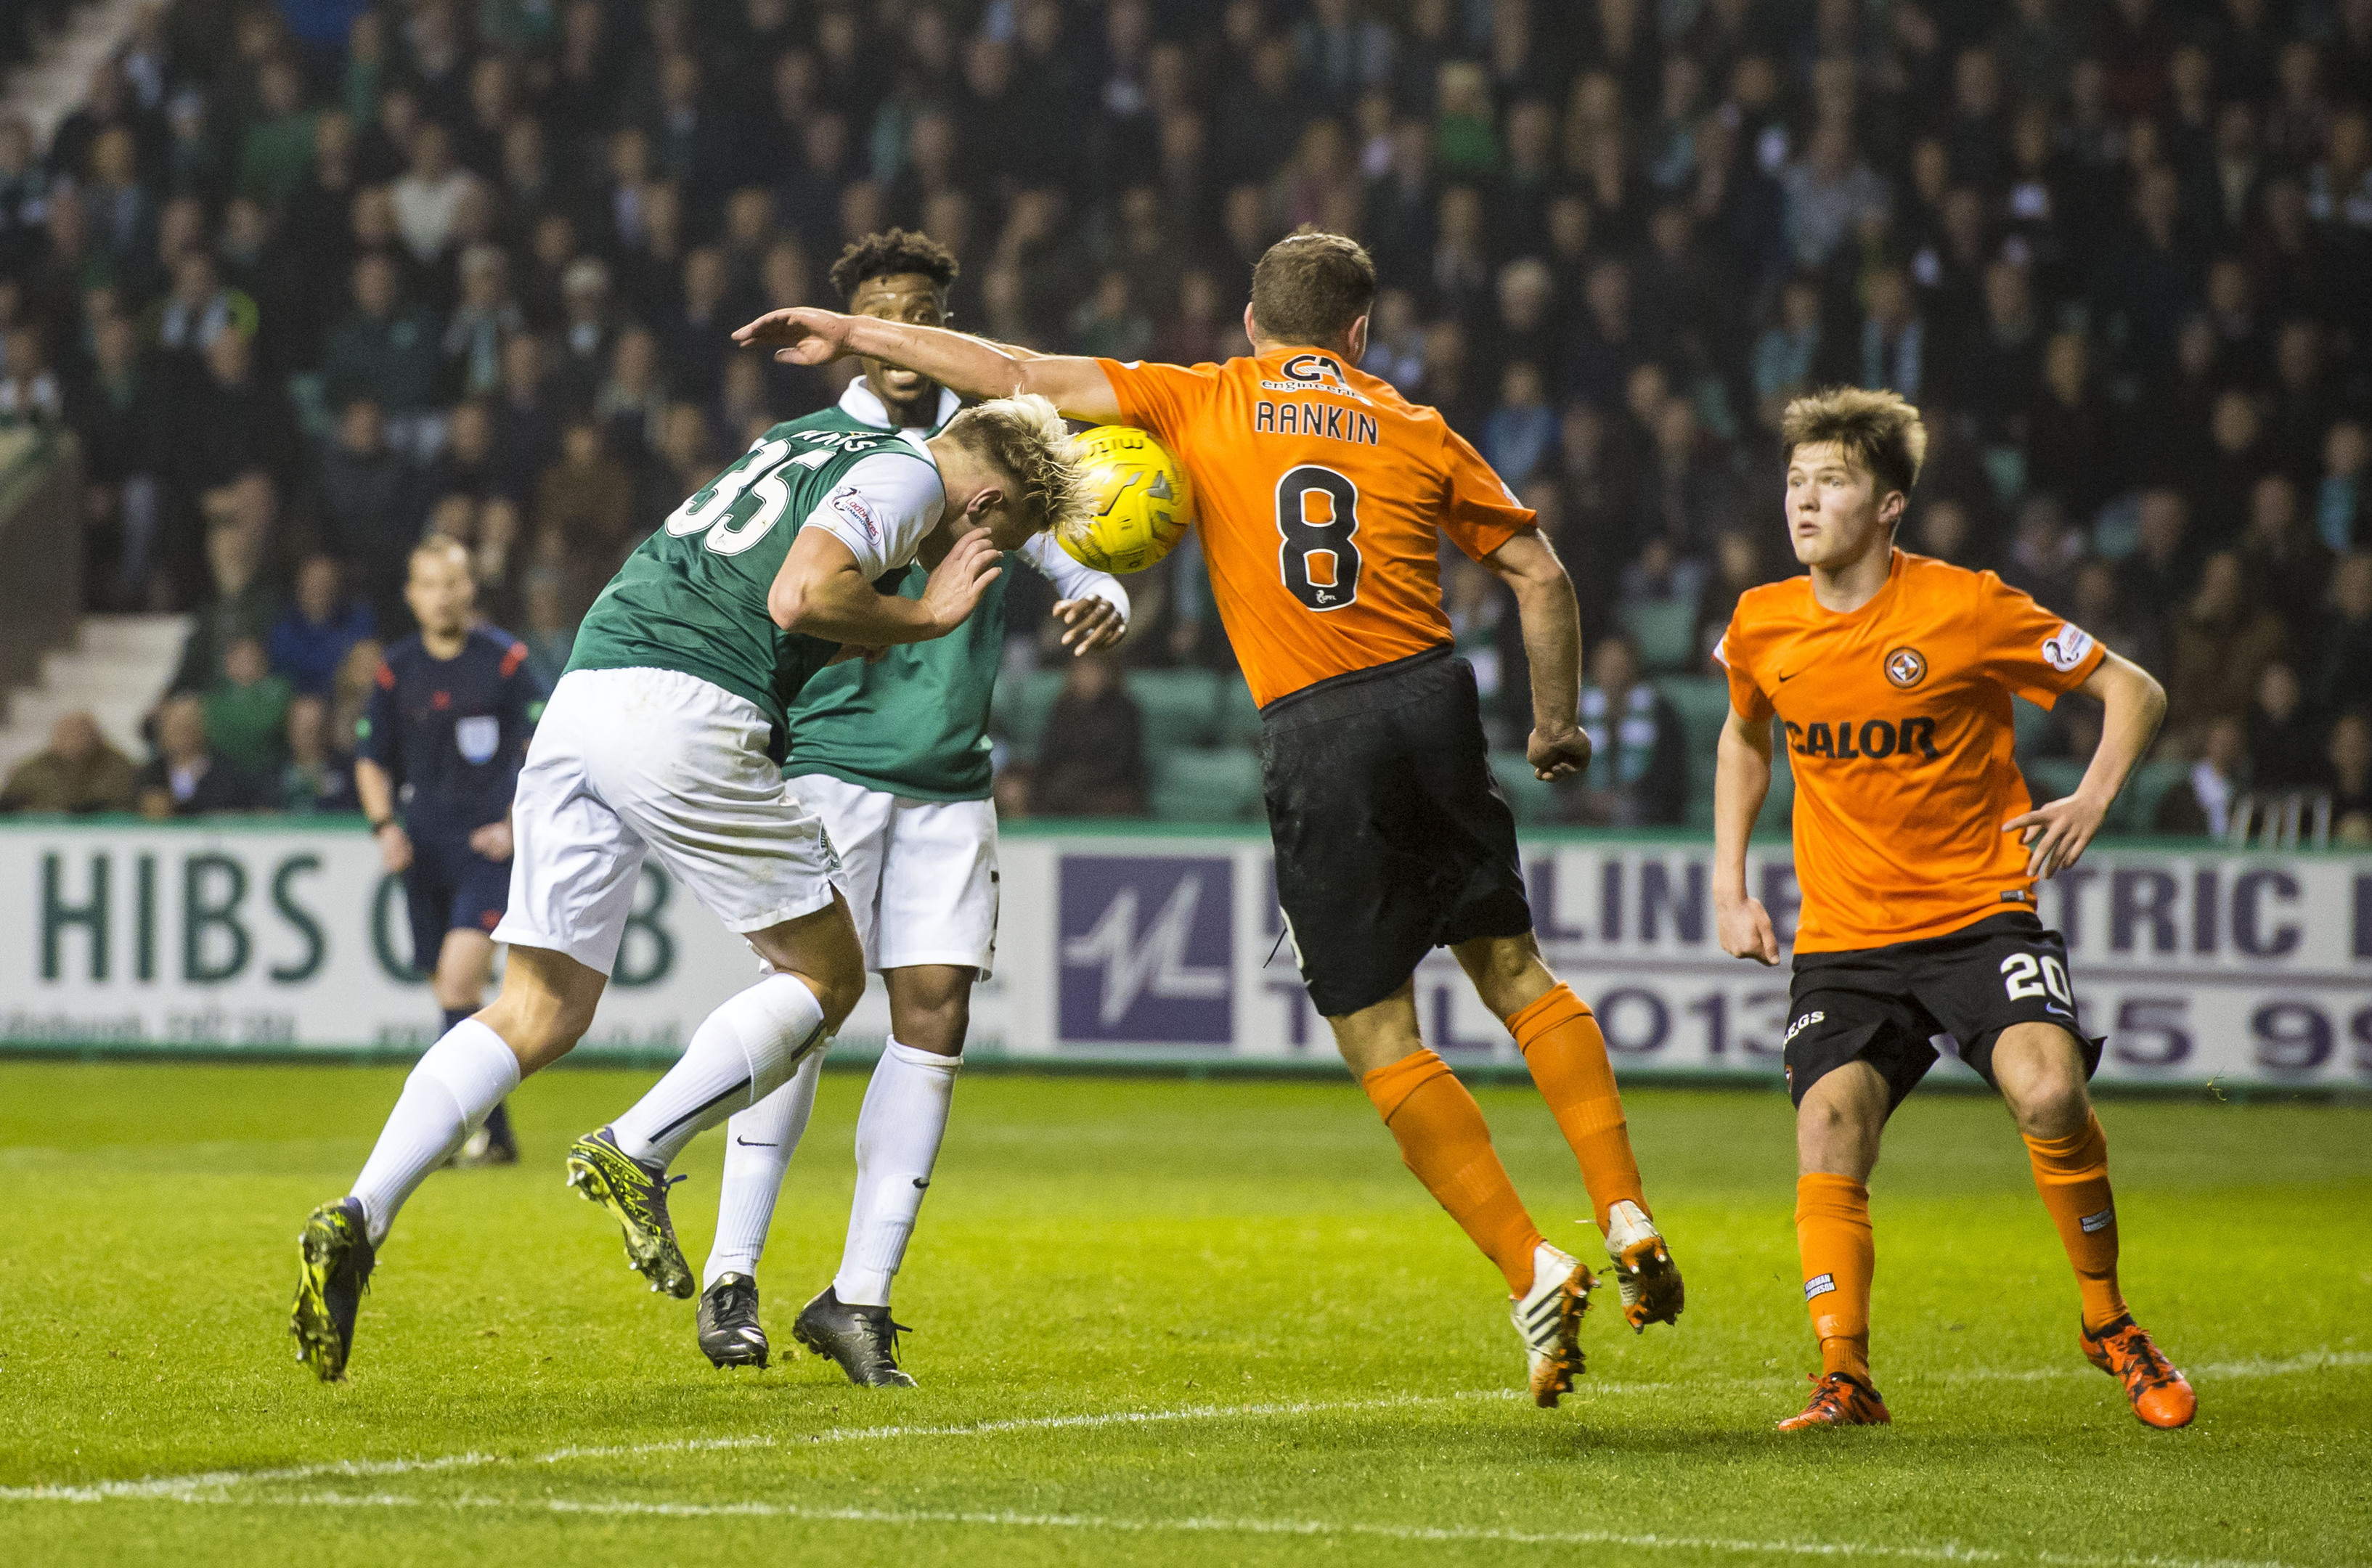 Referee Willie Collum took a firm view that Dundee United's John Rankin's arm struck the ball in the box and awarded a penalty to Hibs during the League Cup quarter-final clash at Easter Road.